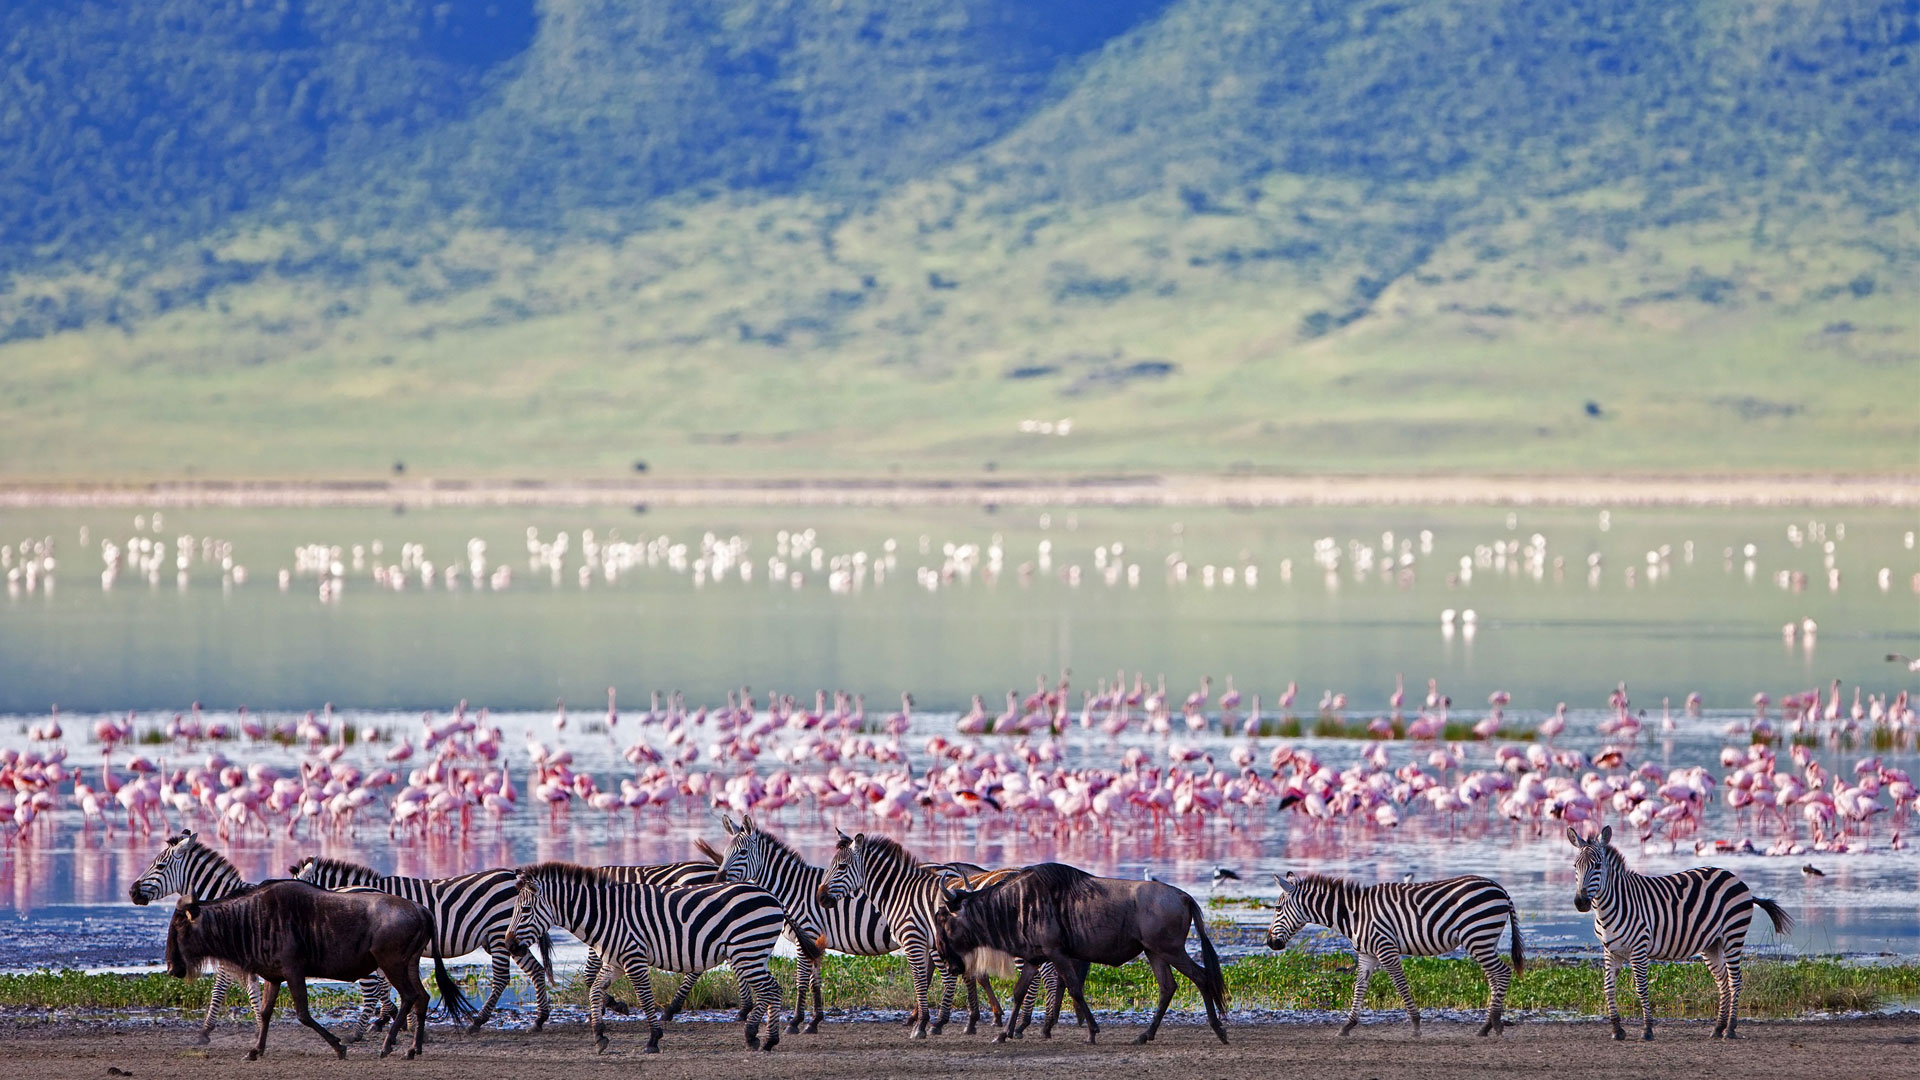 Zebra and wildebeest in the Ngorongoro Crater